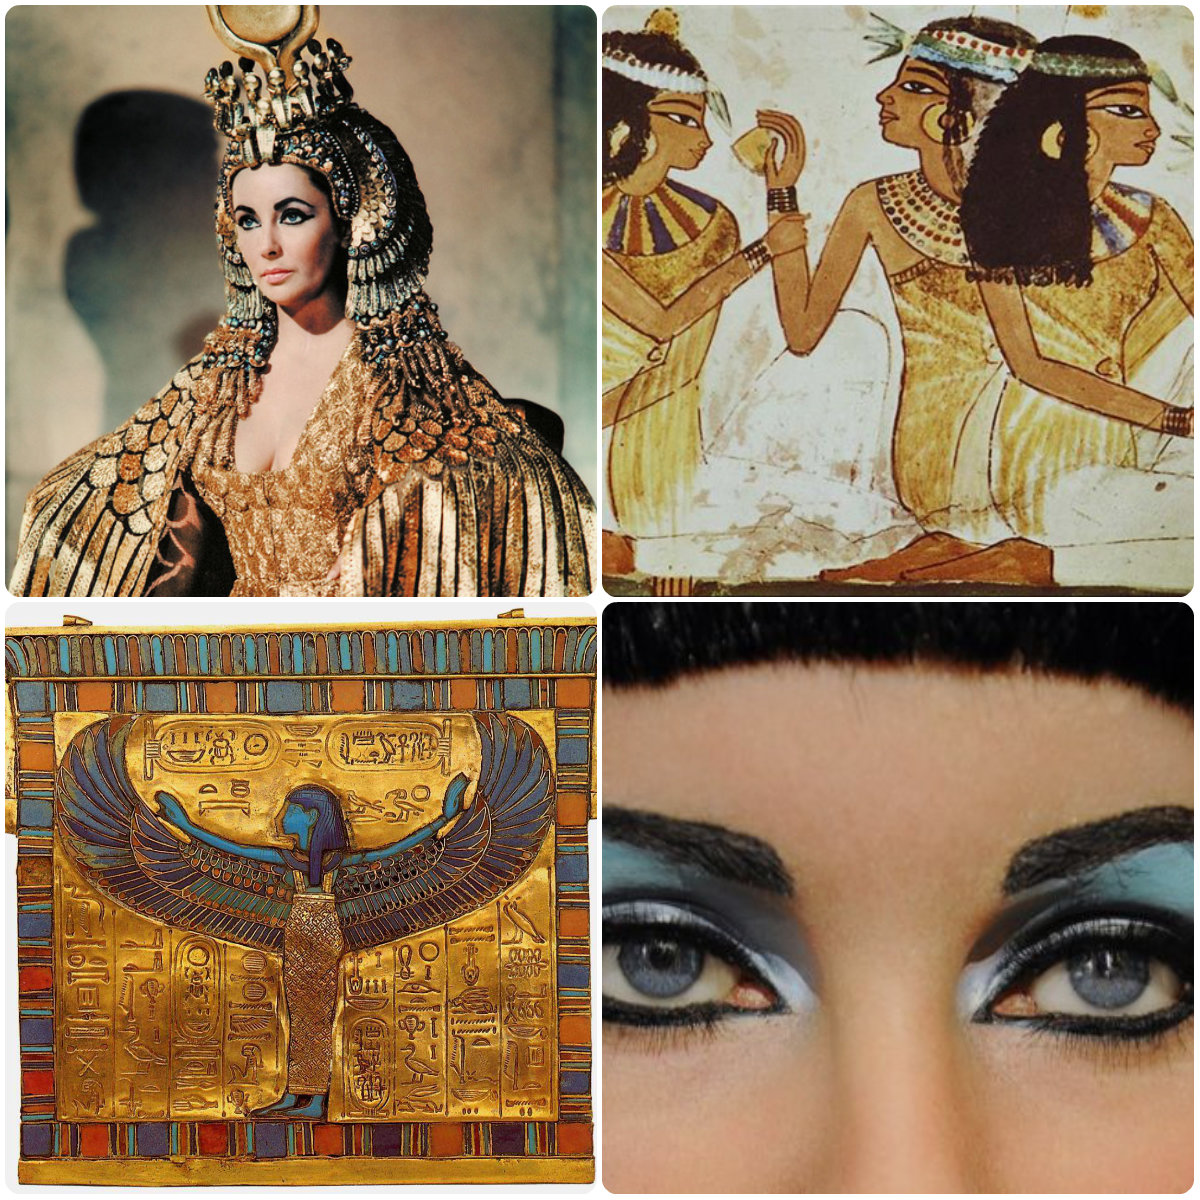 history of cosmetics The first use of prototype cosmetics is usually traced back to the ancient egyptians many egyptian tombs contained makeup canisters and kits cleopatra used lipstick that got its hue from ground carmine beetles, while other women used clay mixed with water to color their lips.